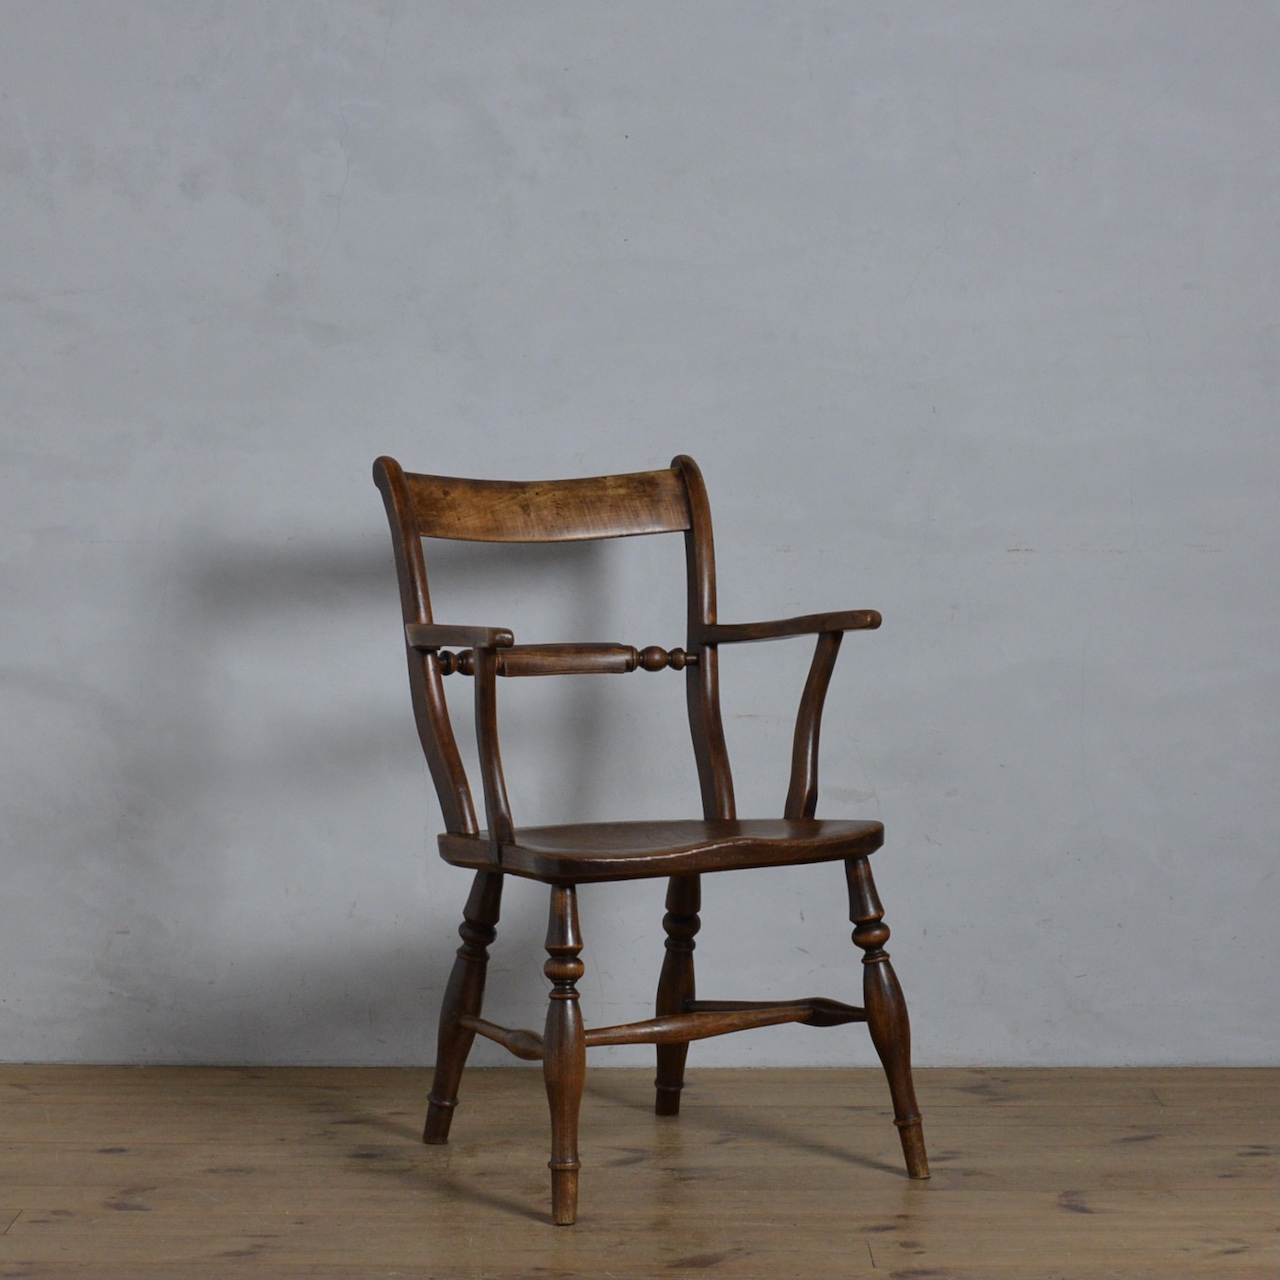 Scrollback Arm Chair / スクロール バック アーム チェア〈ダイニング チェア・椅子・キッチンチェア〉 112151